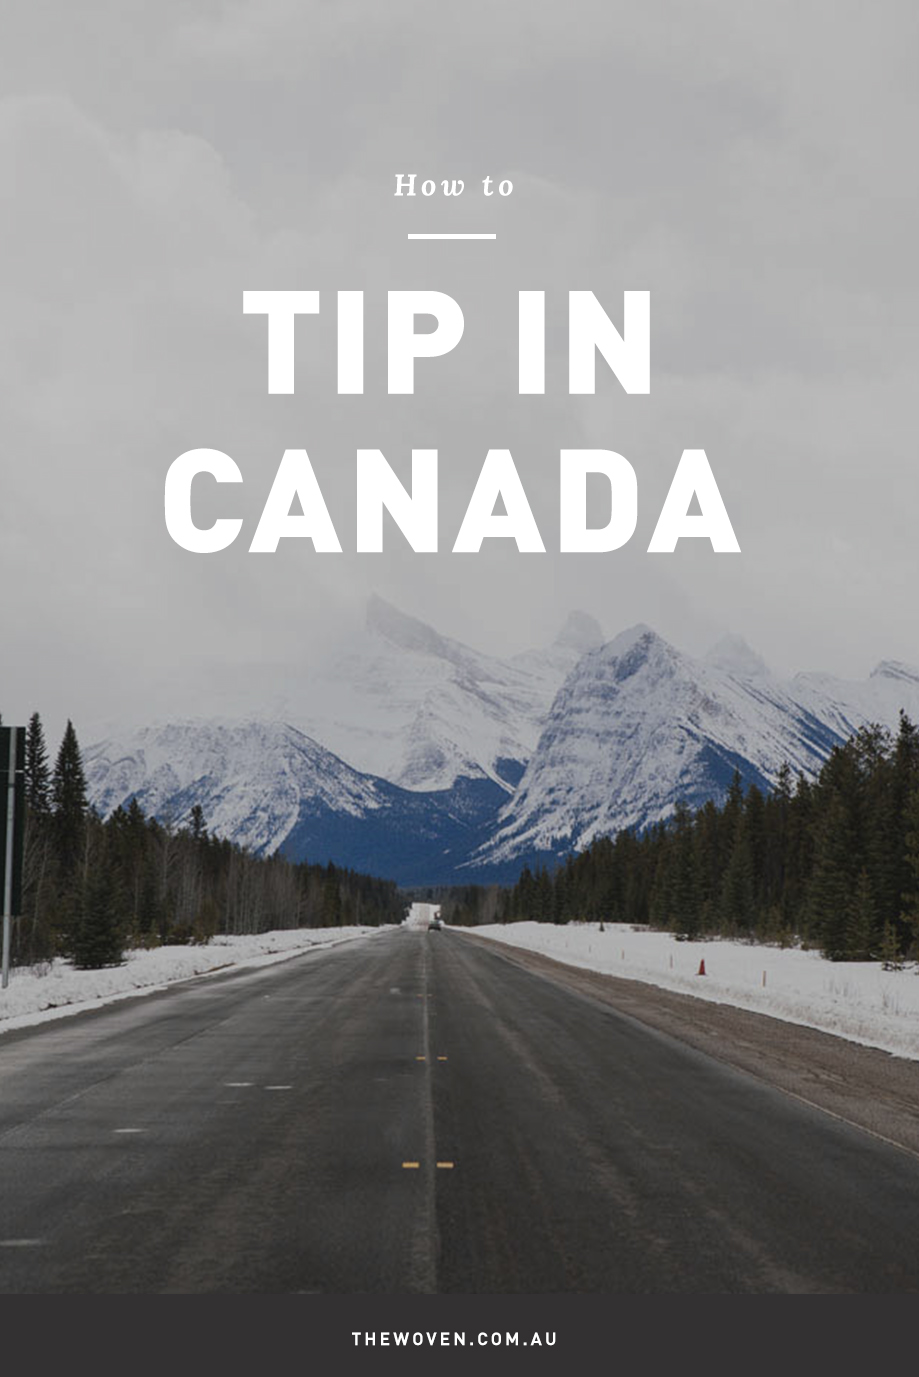 Tipping in Canada